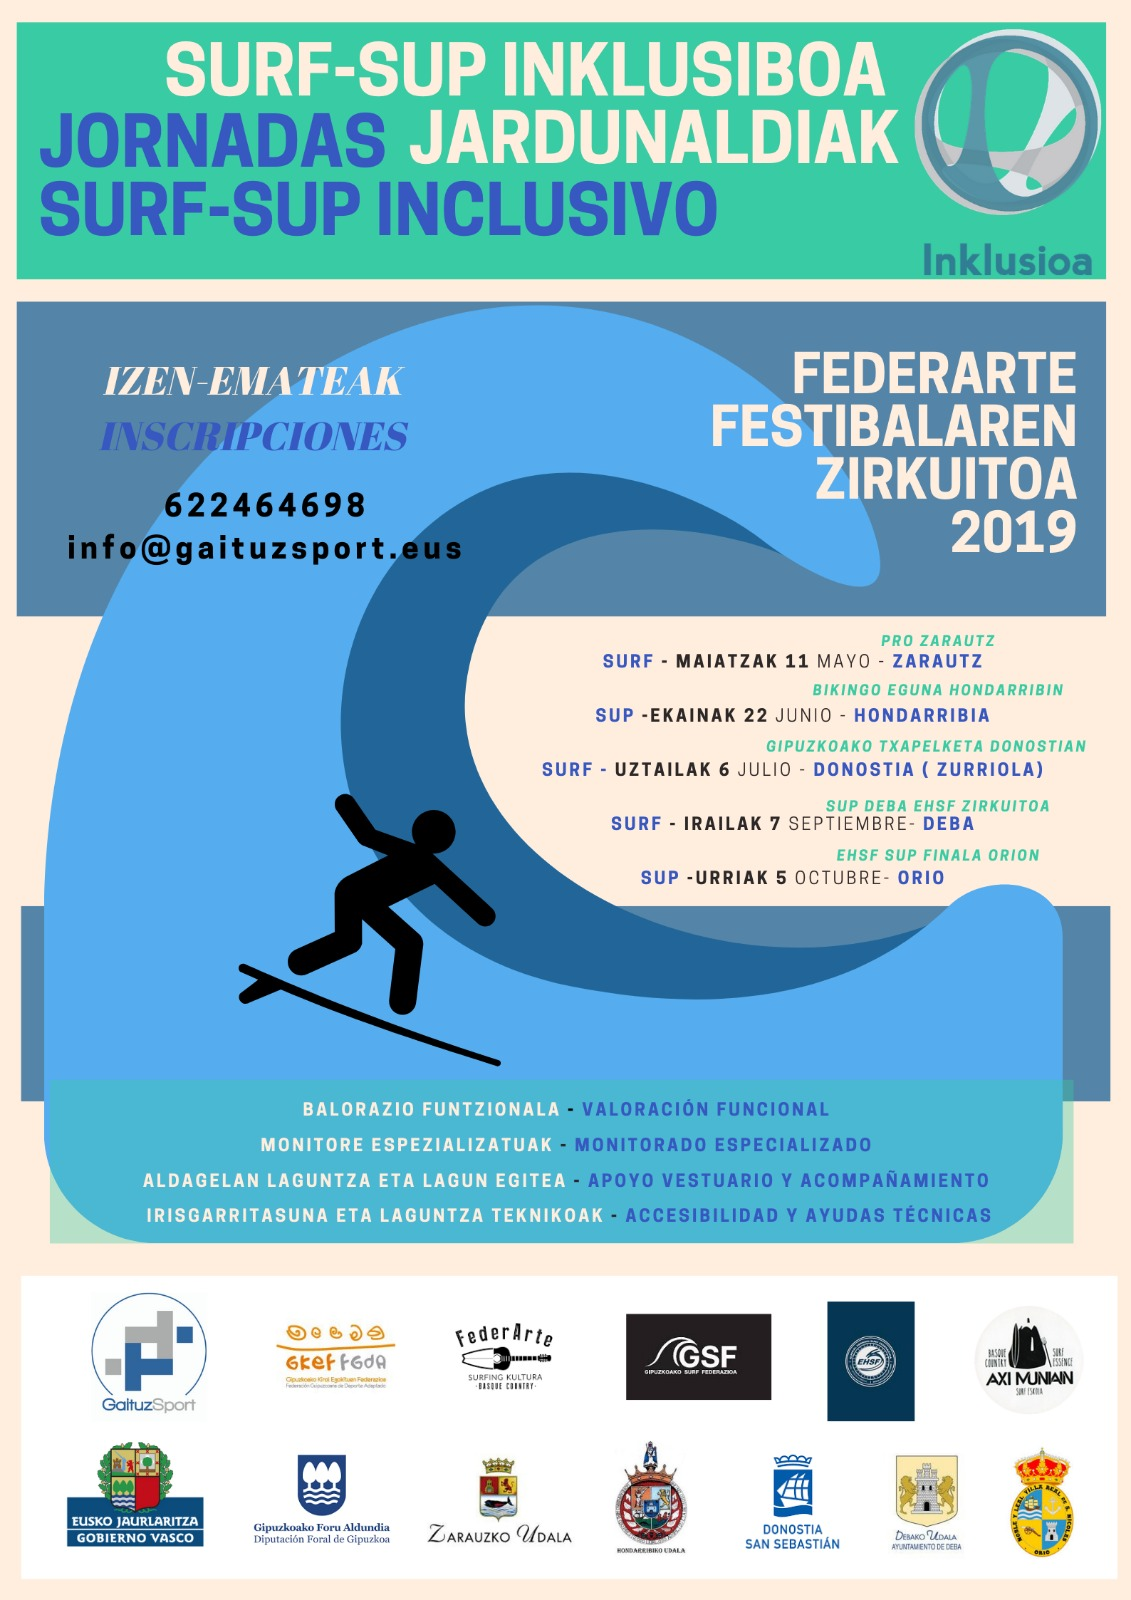 Cartel Jornadas de Surf Inclusivo 2019